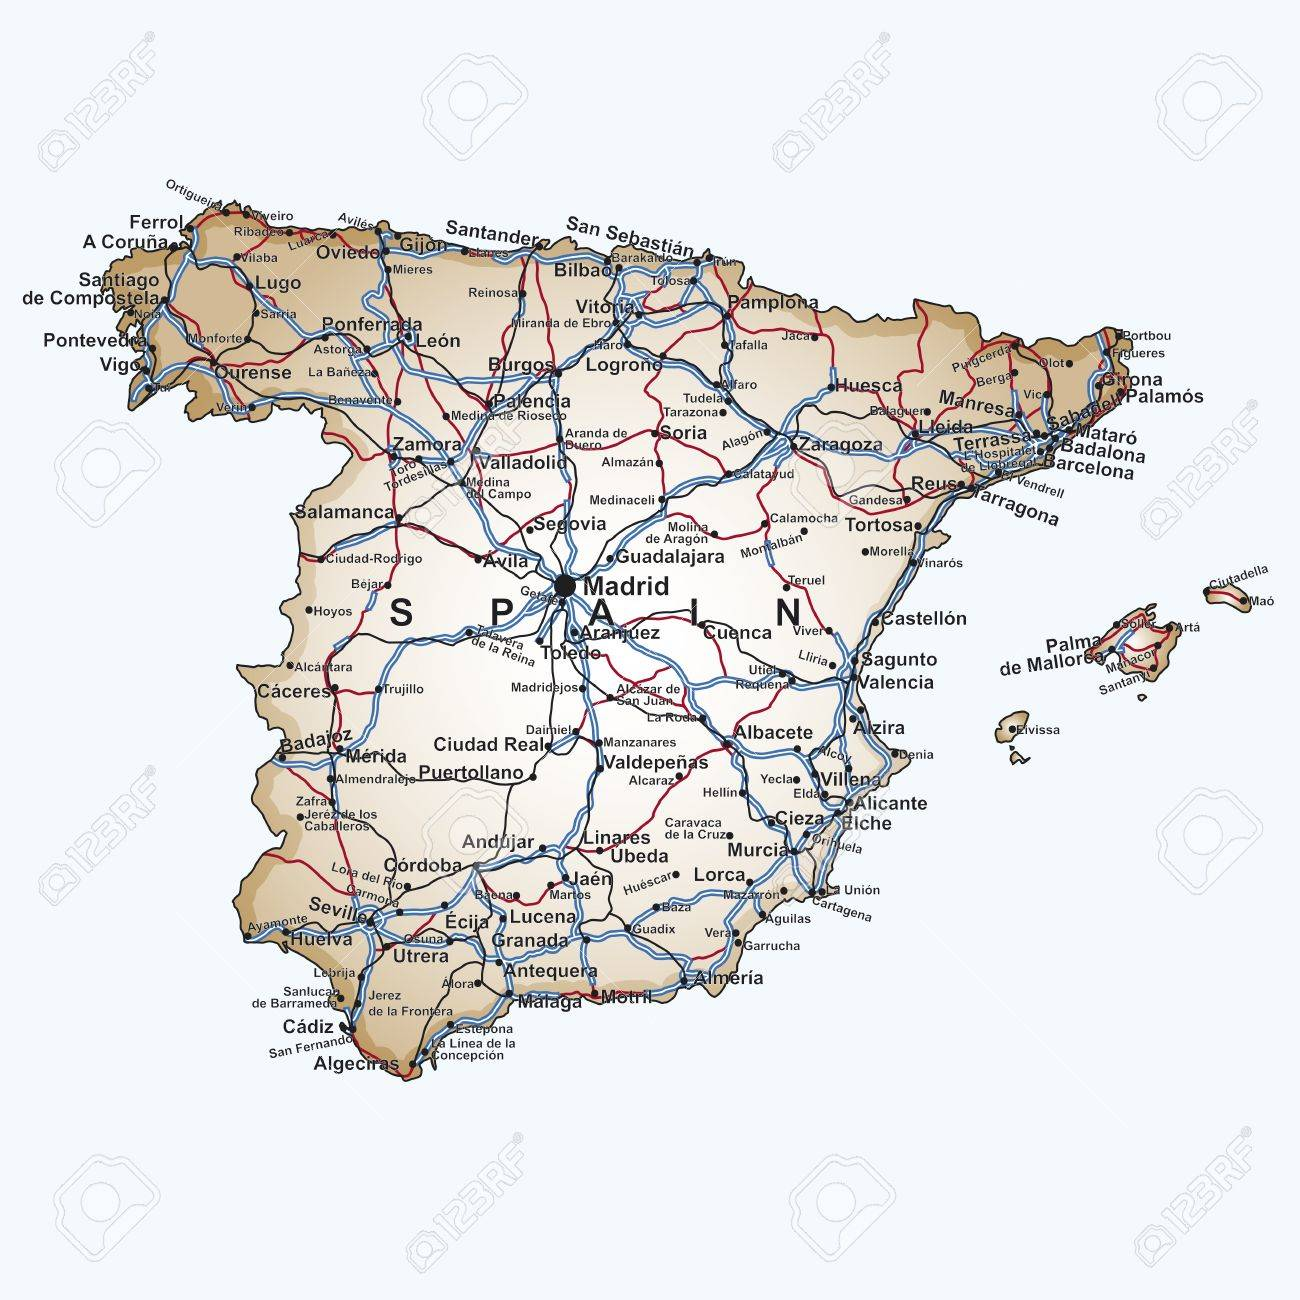 Road Map Of Spain With The Main Cities And Towns Highways And - Map of main